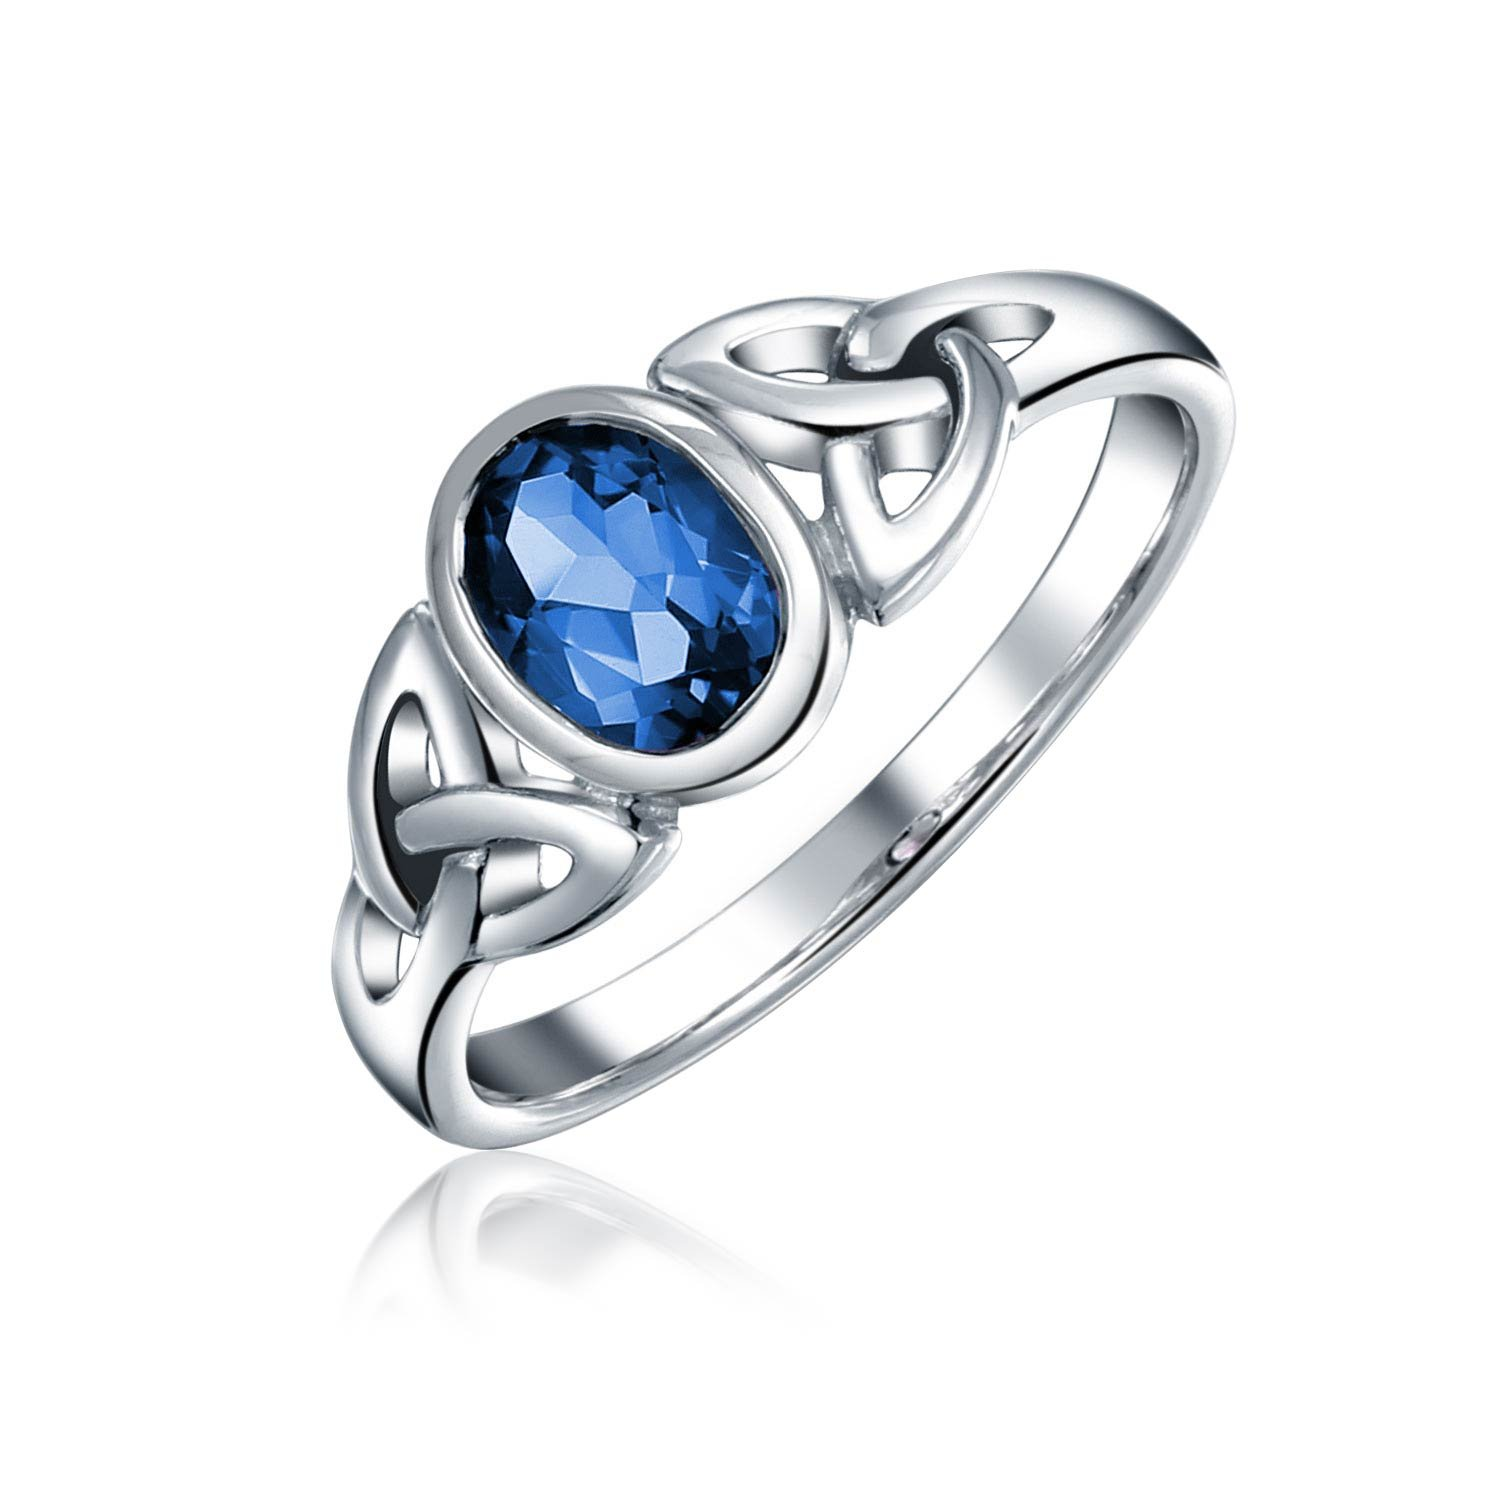 Simulated Sapphire Glass Celtic Knot Triquetra Sterling Silver Ring